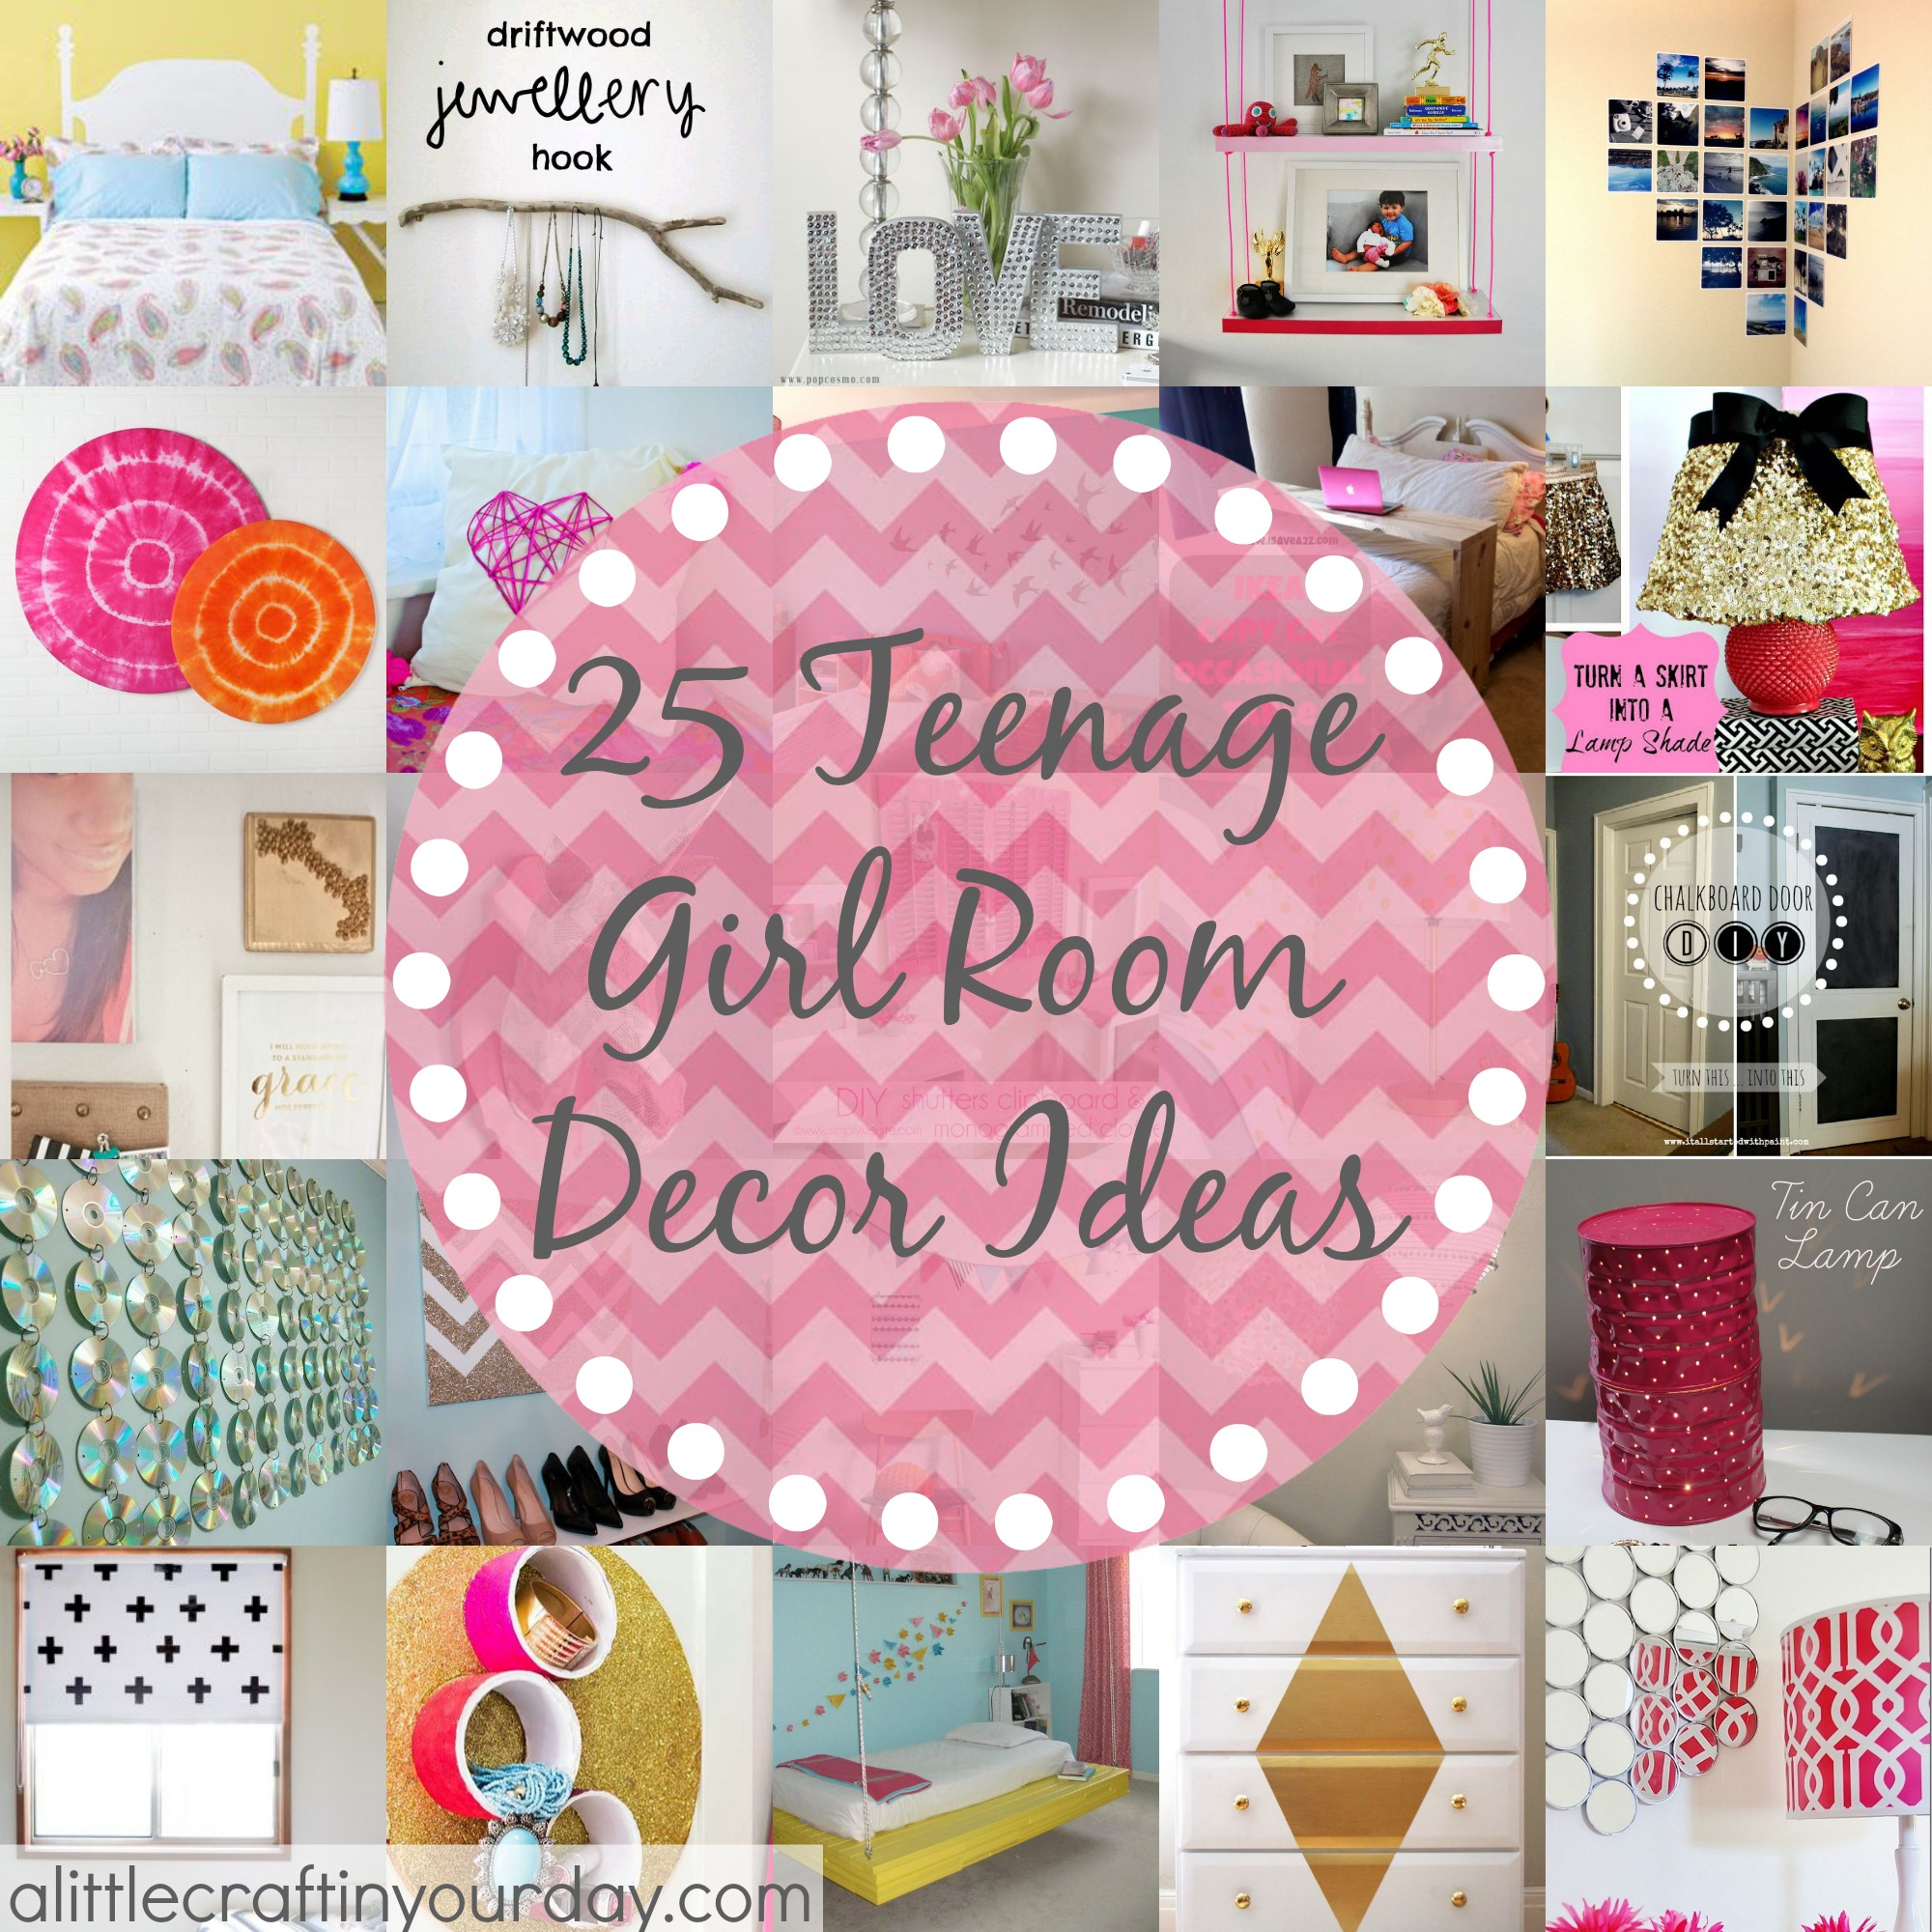 Magnificent 25 More Teenage Girl Room Decor Ideas A Little Craft In Home Interior And Landscaping Ologienasavecom